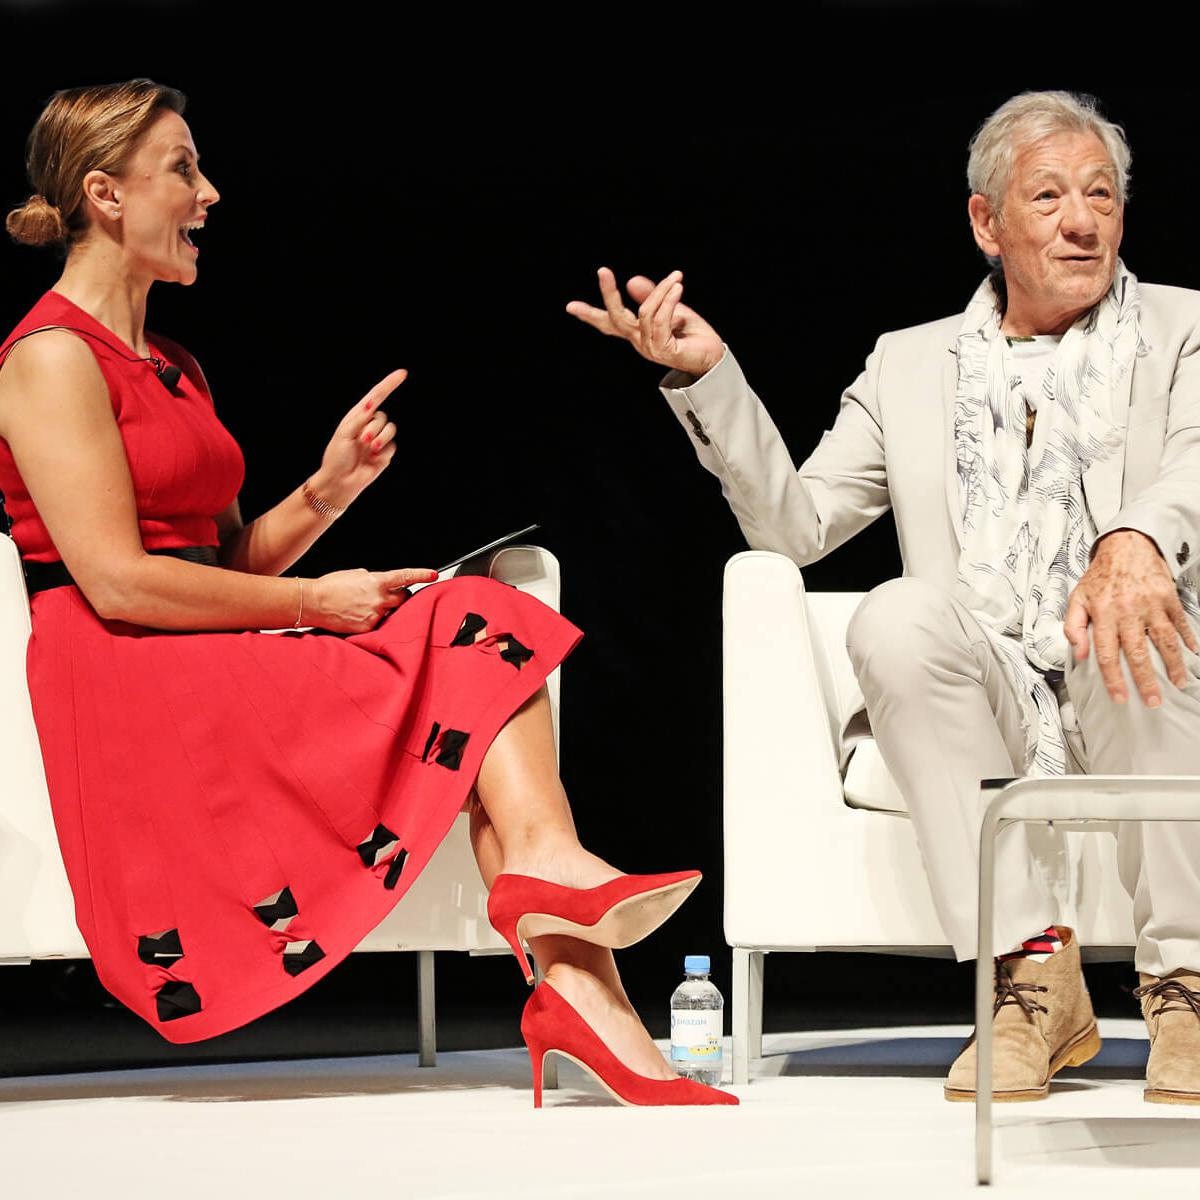 Photograph of Actor, Sir Ian McKellen by Julian Hanford at Cannes Lions 2017